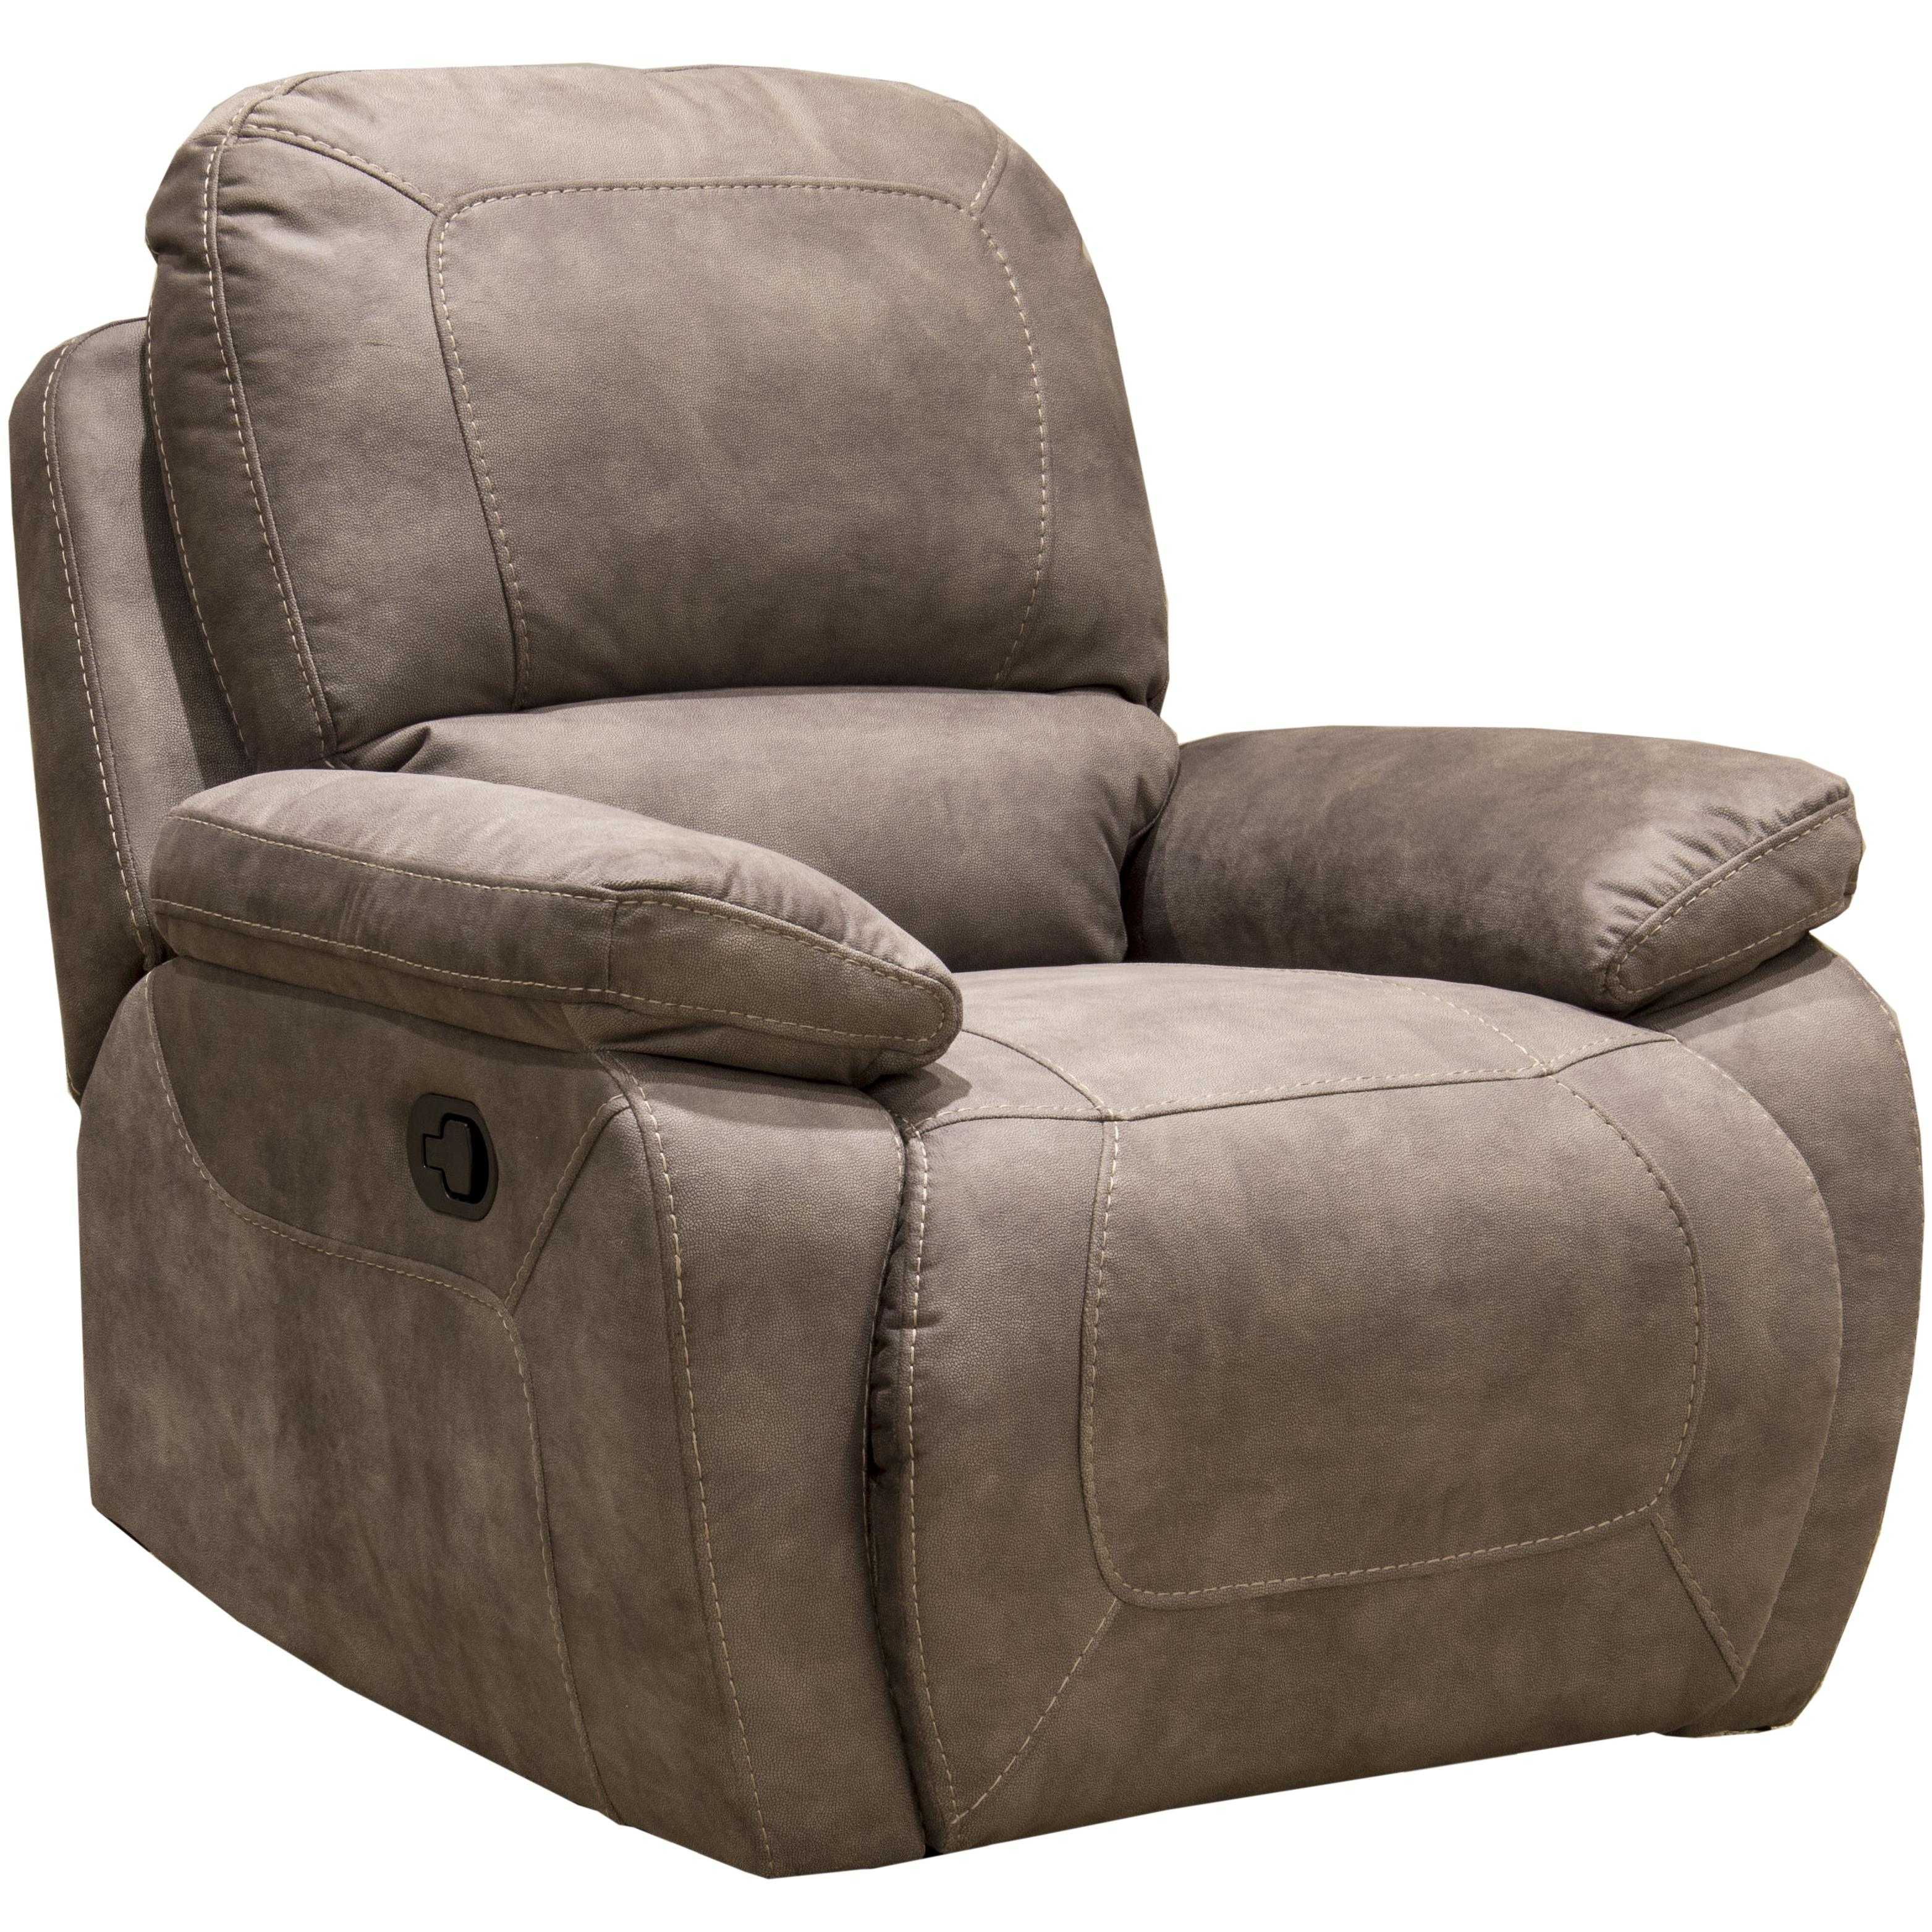 Synergy Home Furnishings 1060 Collection Casual Lay Flat Power Recliner With Pillow Top Arms